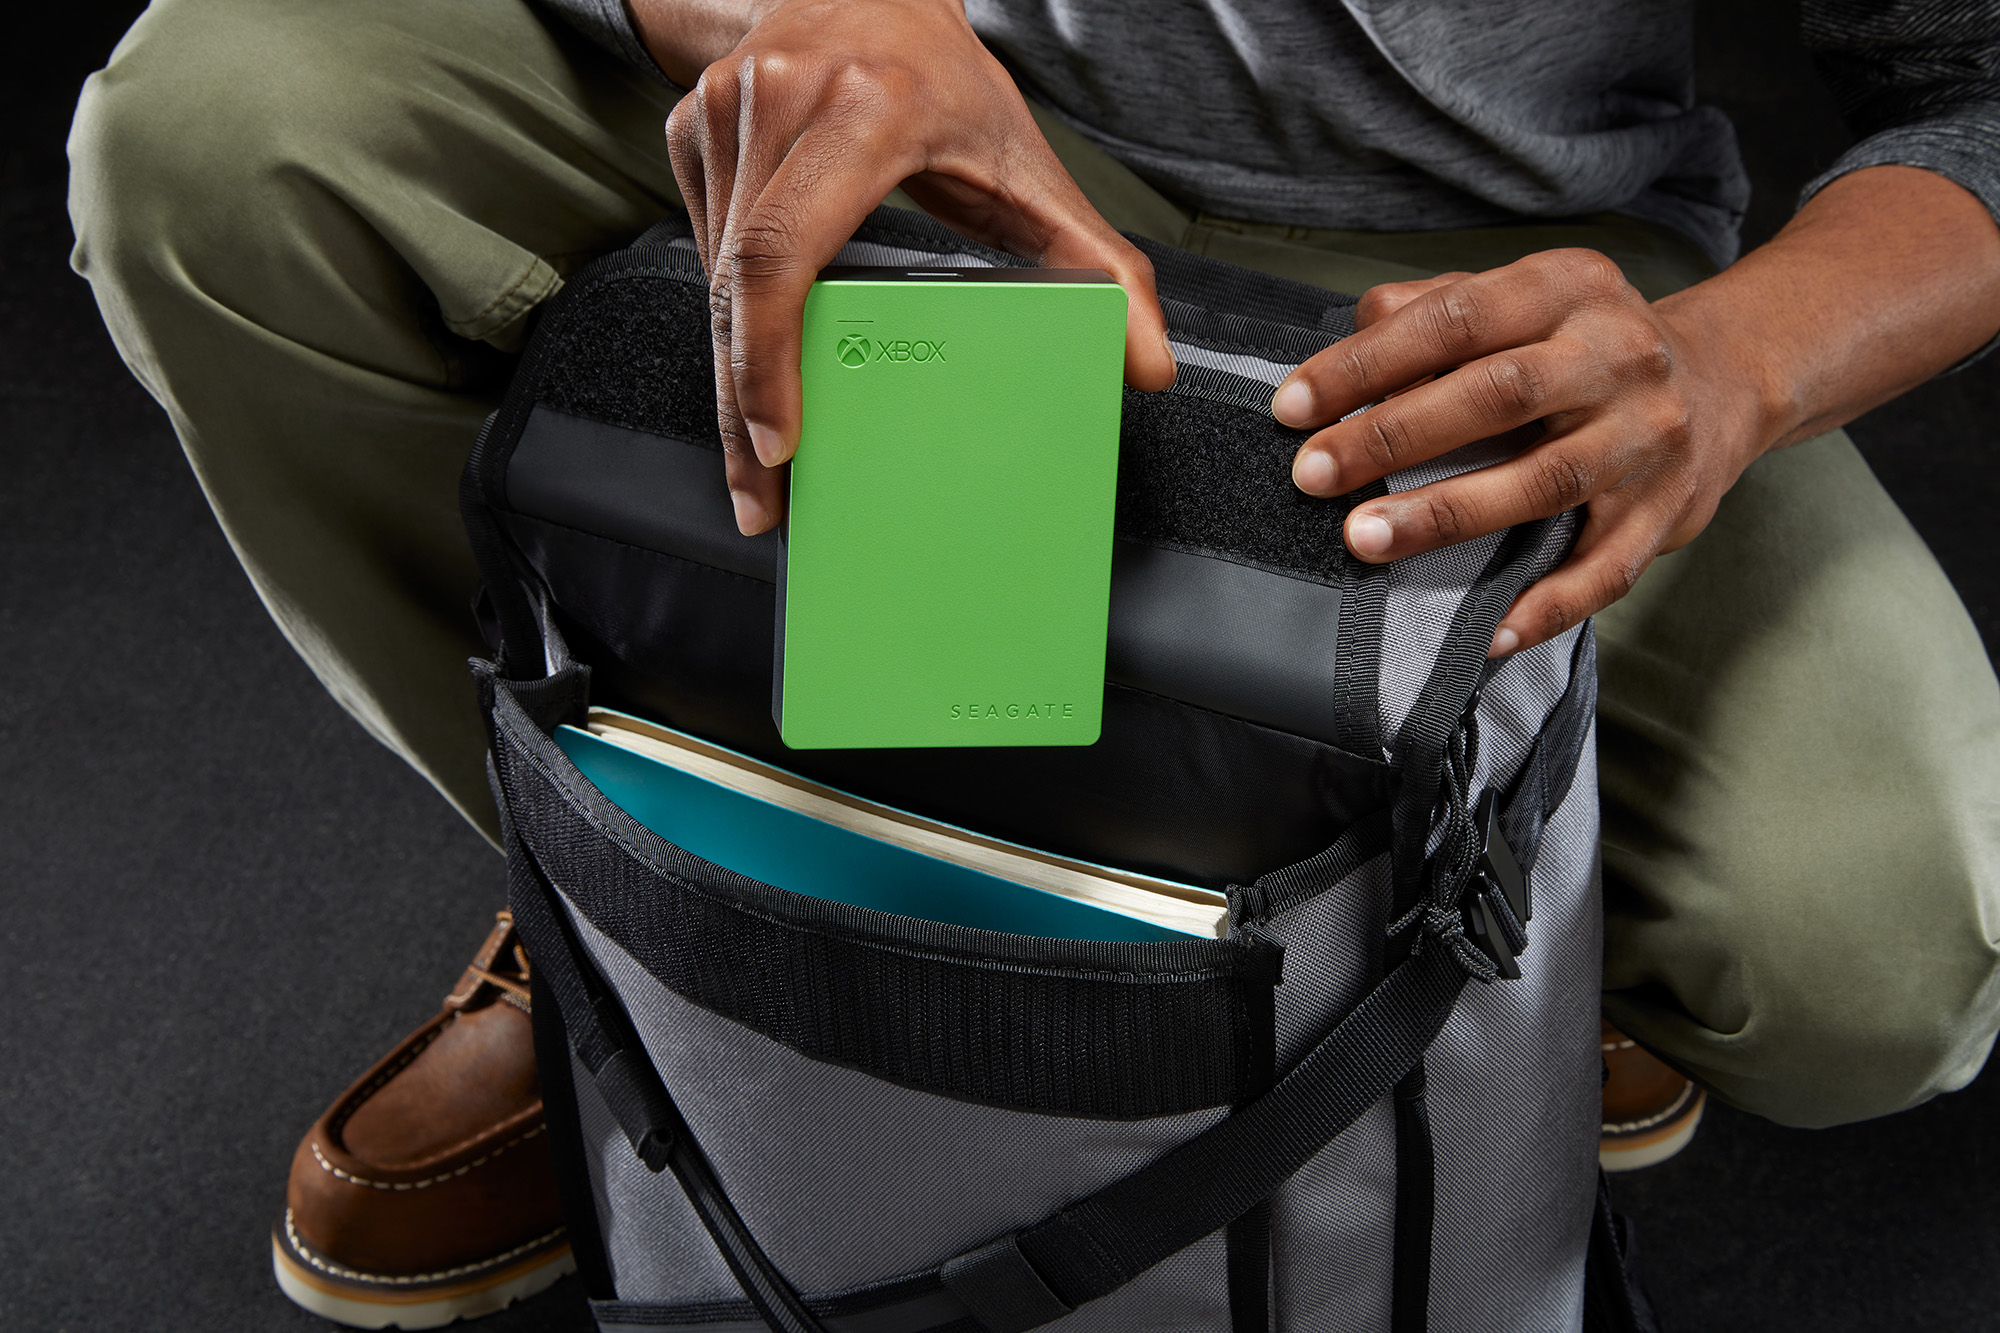 Portable Game Drive for XBox